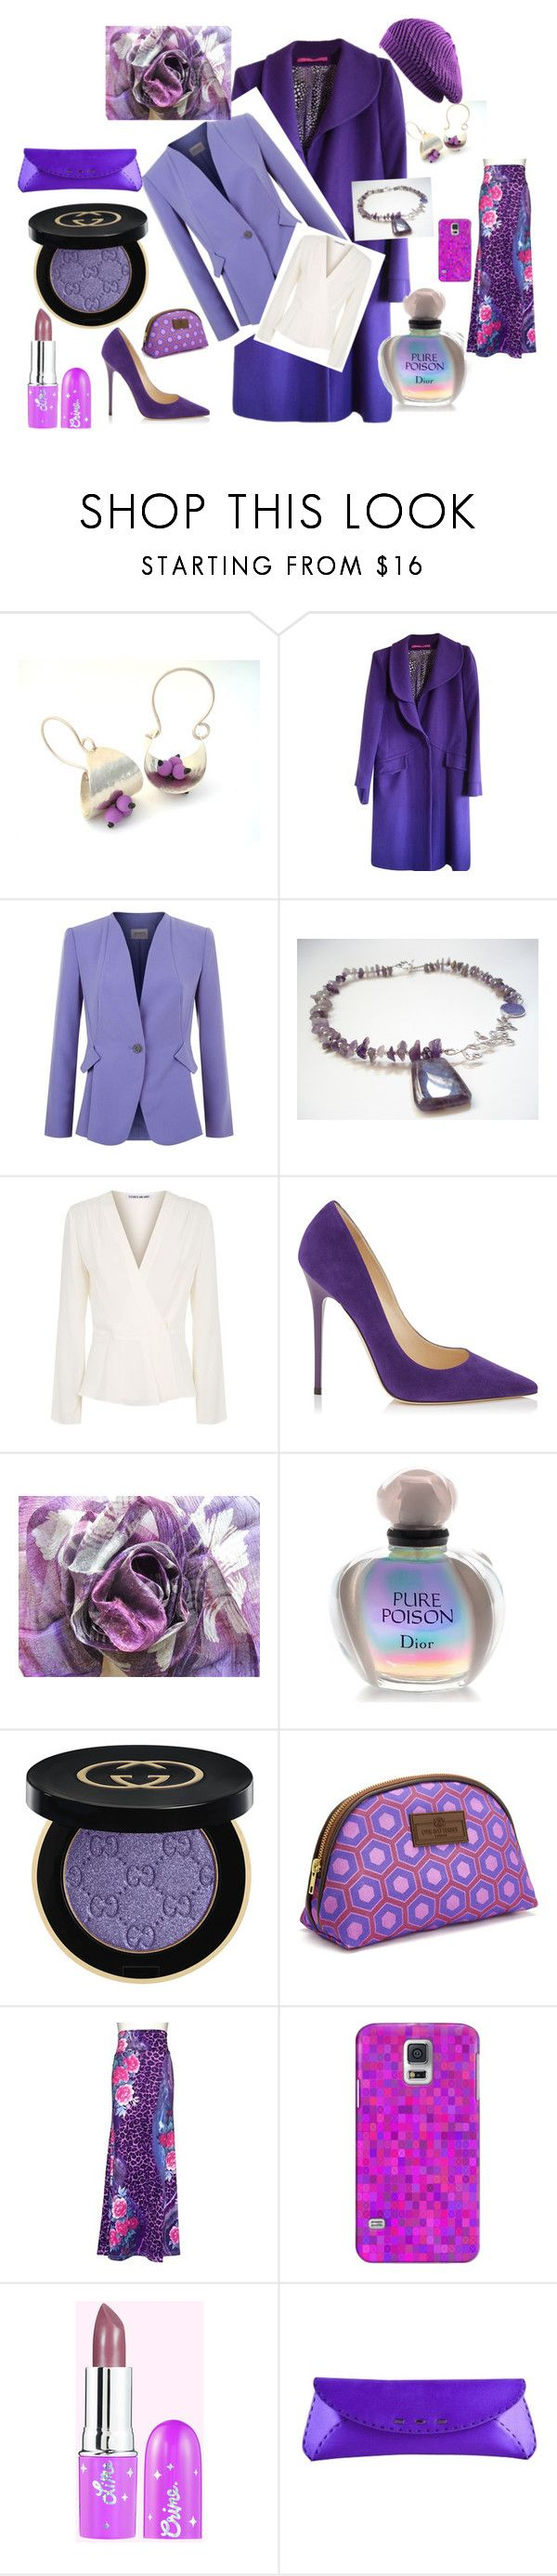 """""""Untitled #25"""" by rosshandmadecrafts on Polyvore featuring Emanuel Ungaro, Armani Collezioni, Elizabeth and James, Jimmy Choo, Christian Dior, Gucci, OTIS BATTERBEE, Casetify and VBH"""